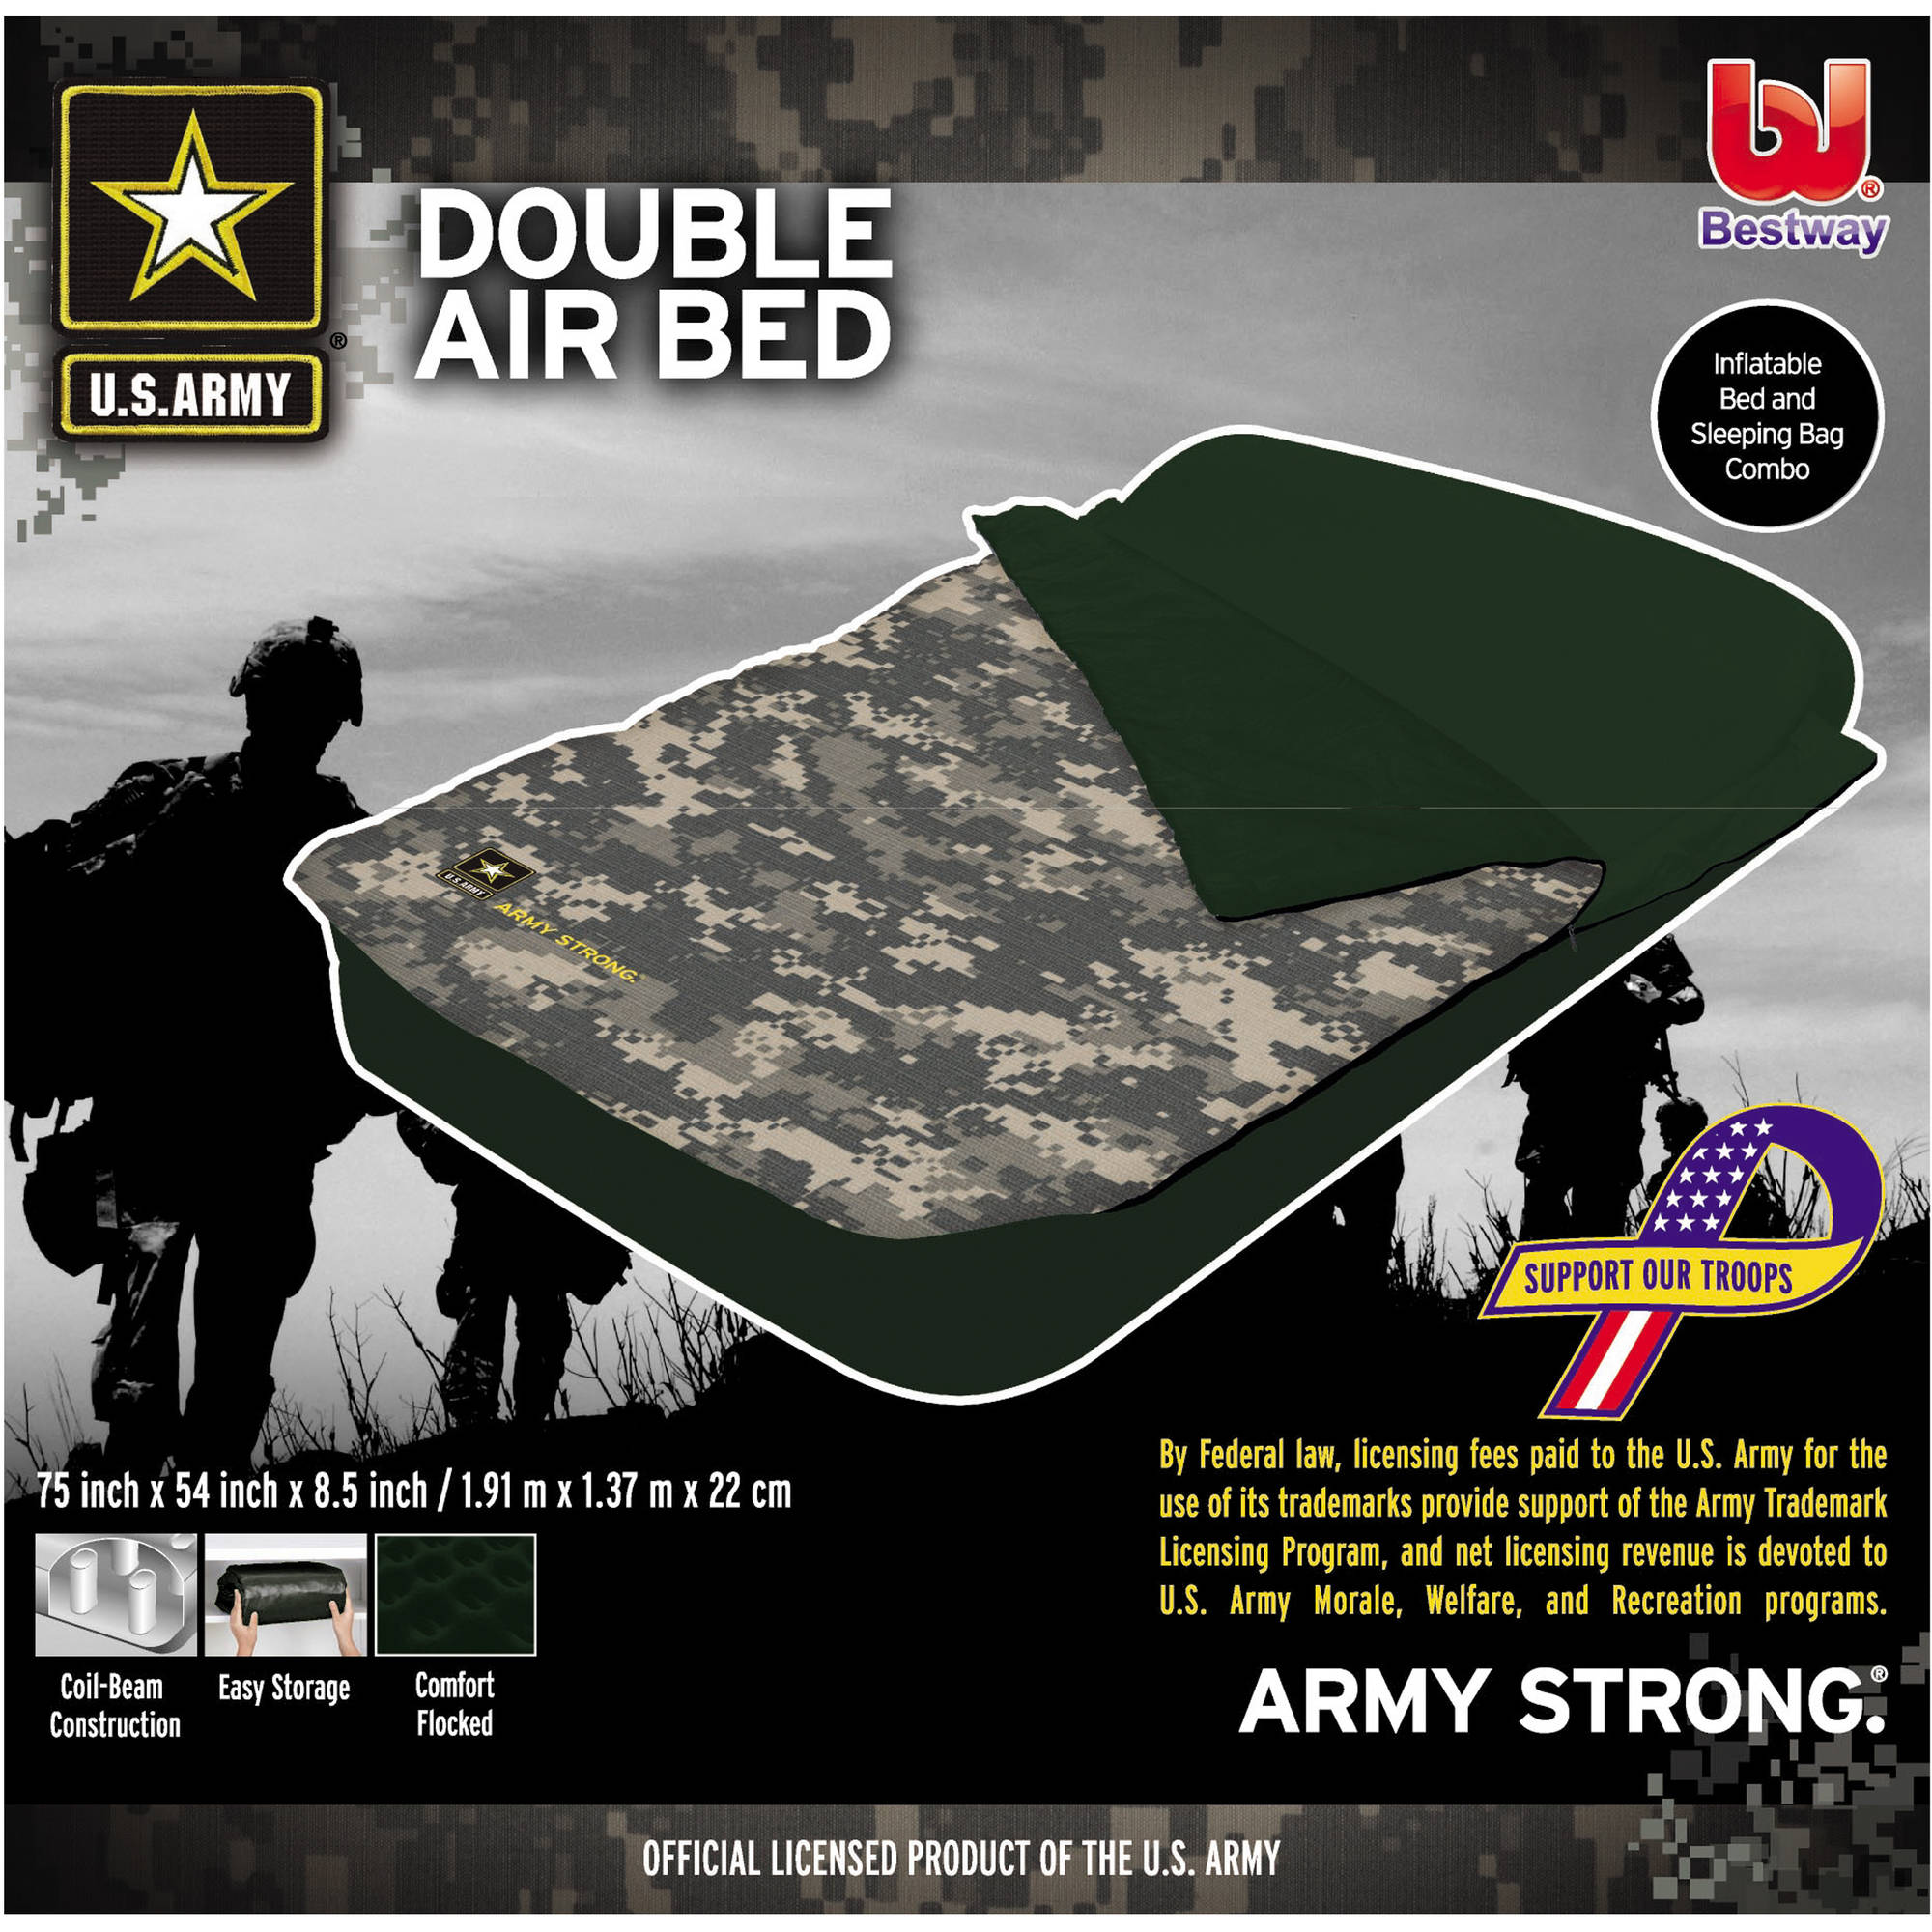 Bestway US Army Full-Size Air Bed with Sleeping Bag - Walmart.com